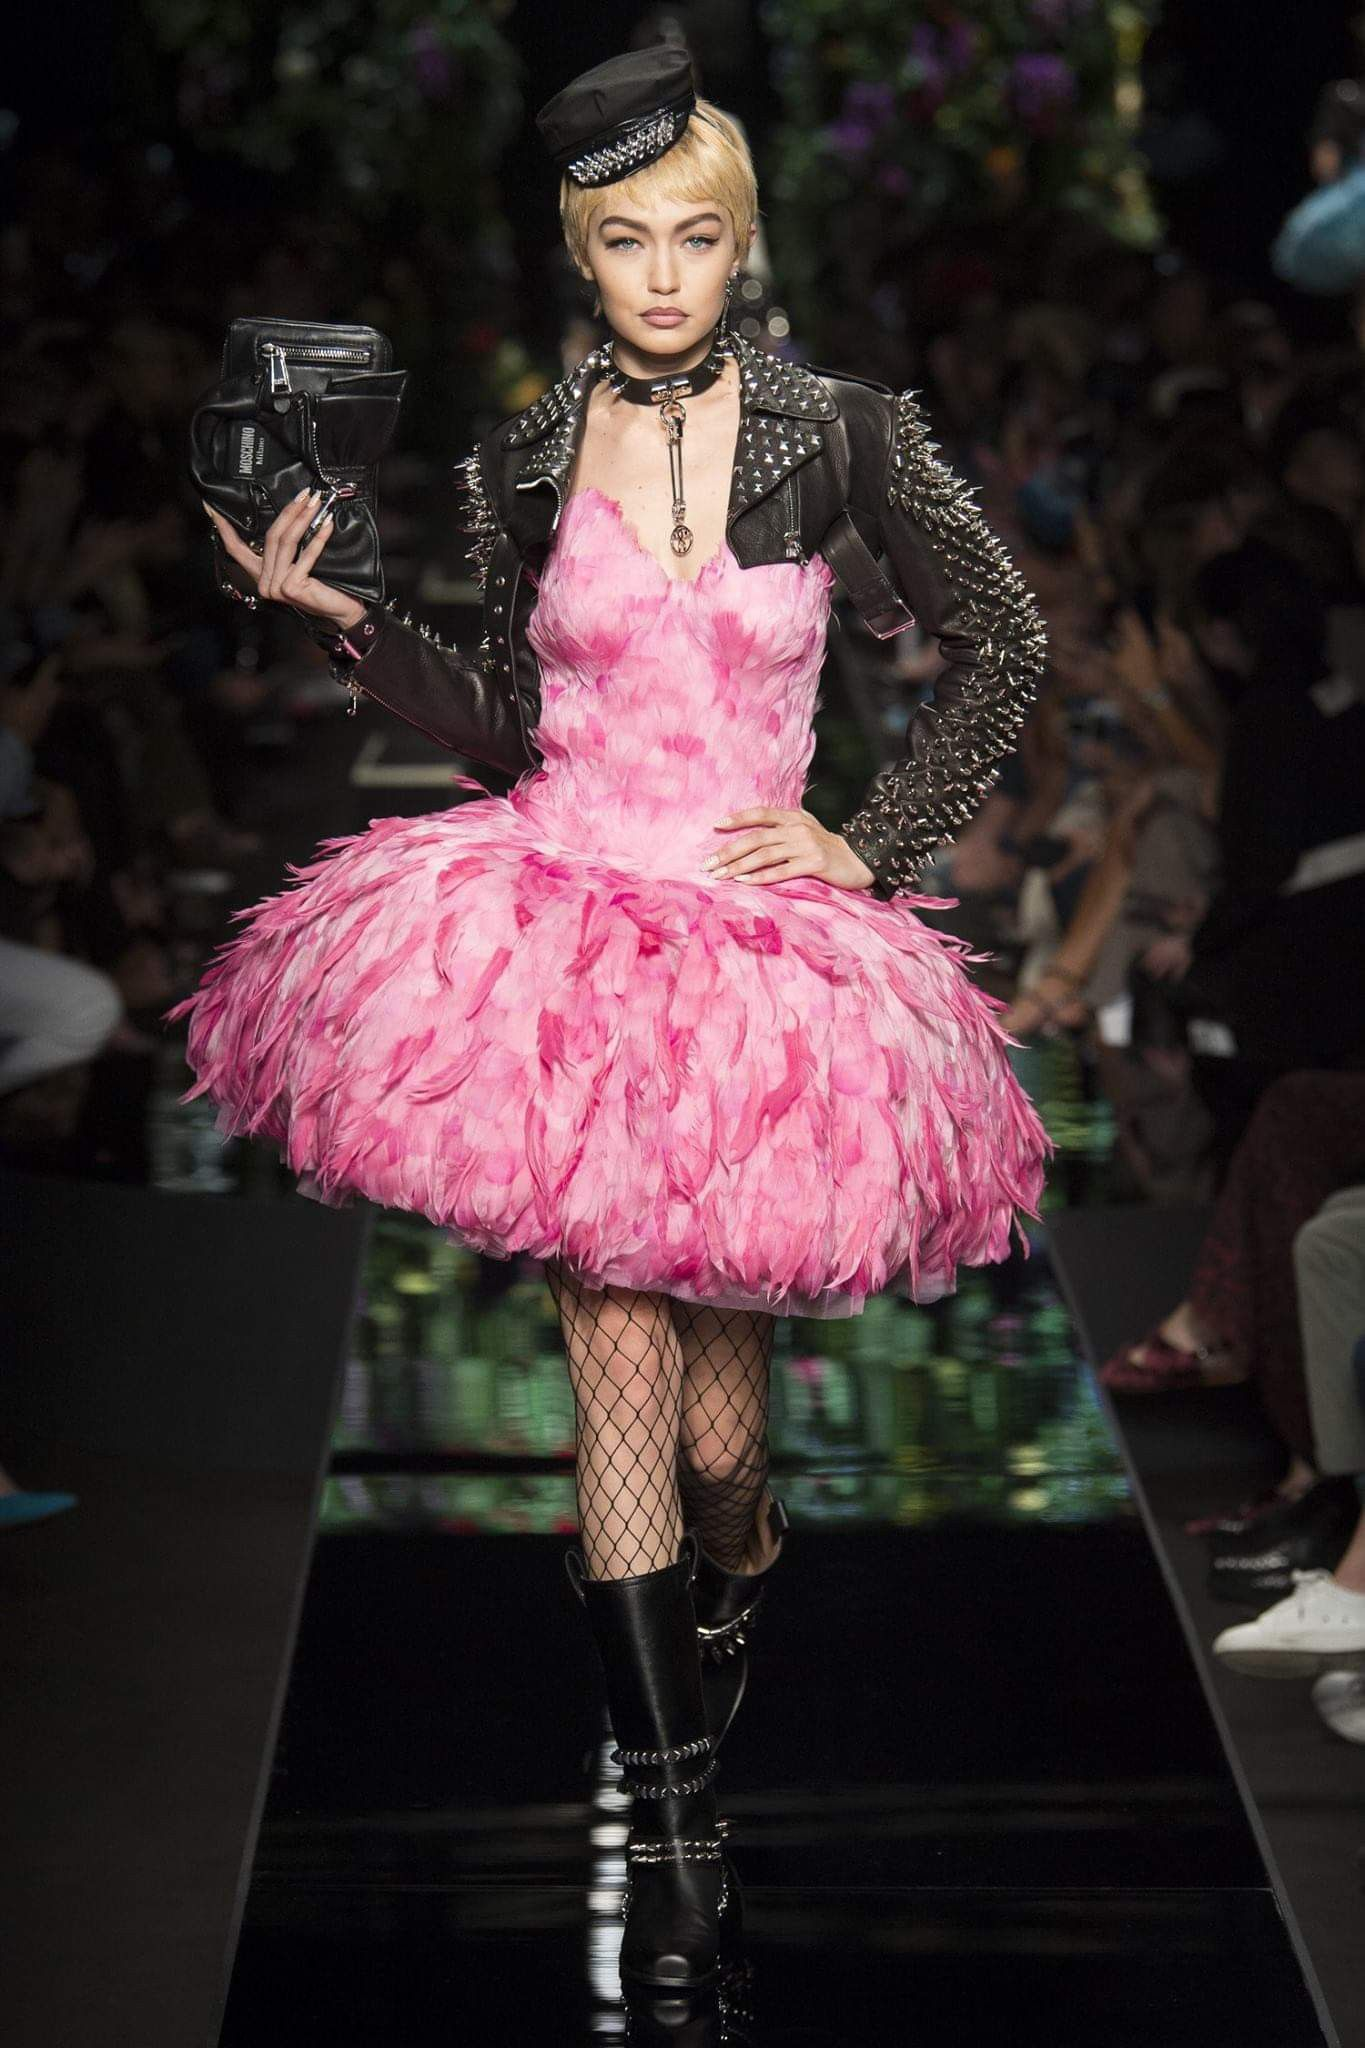 2a354b68679 Love, beauty and femininity. At the Milano Fashion Week shows, Dolce e  Gabbana sent the Queen of